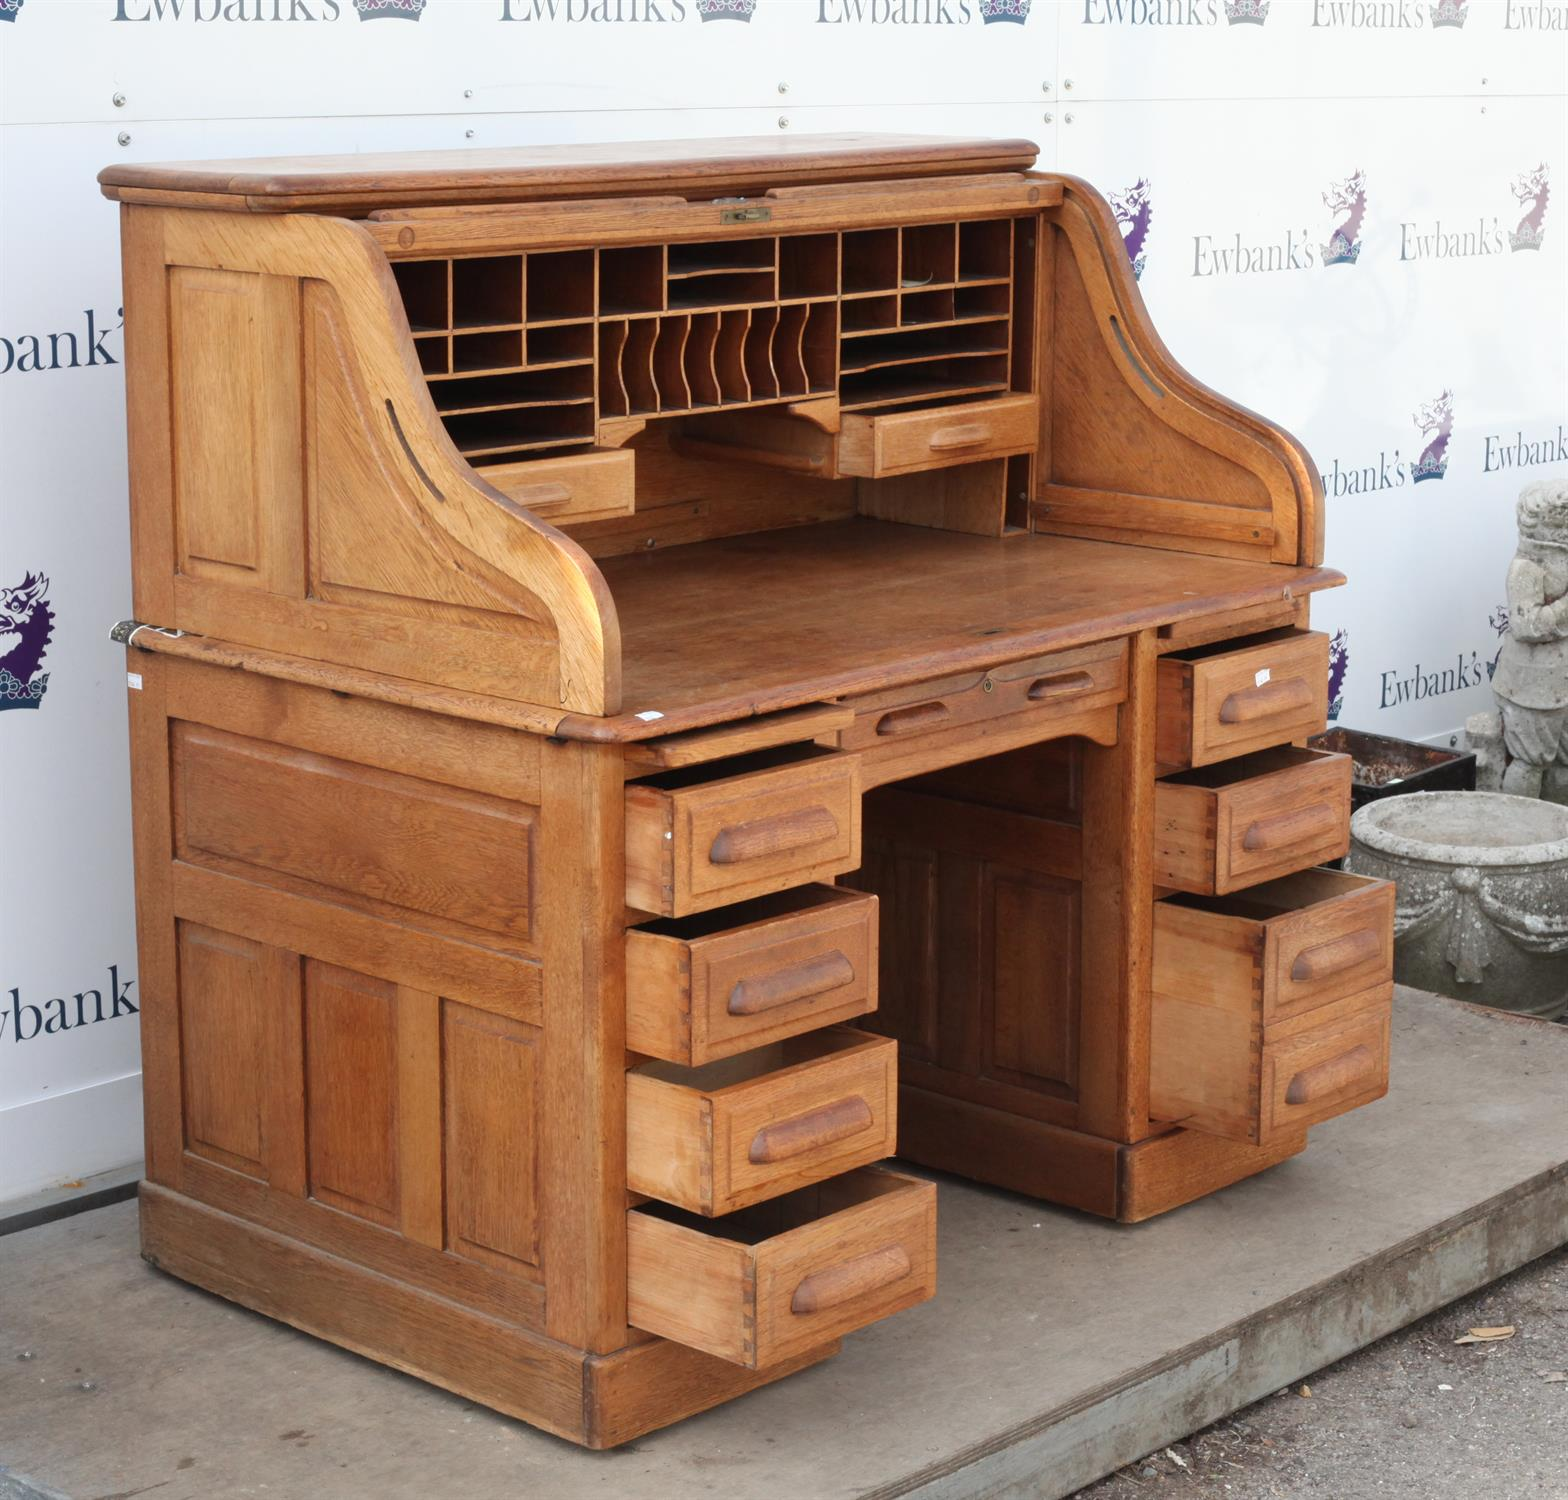 Early 20th century oak roll top desk, the roll top enclosing pigeon holes and drawers on base with - Image 3 of 3